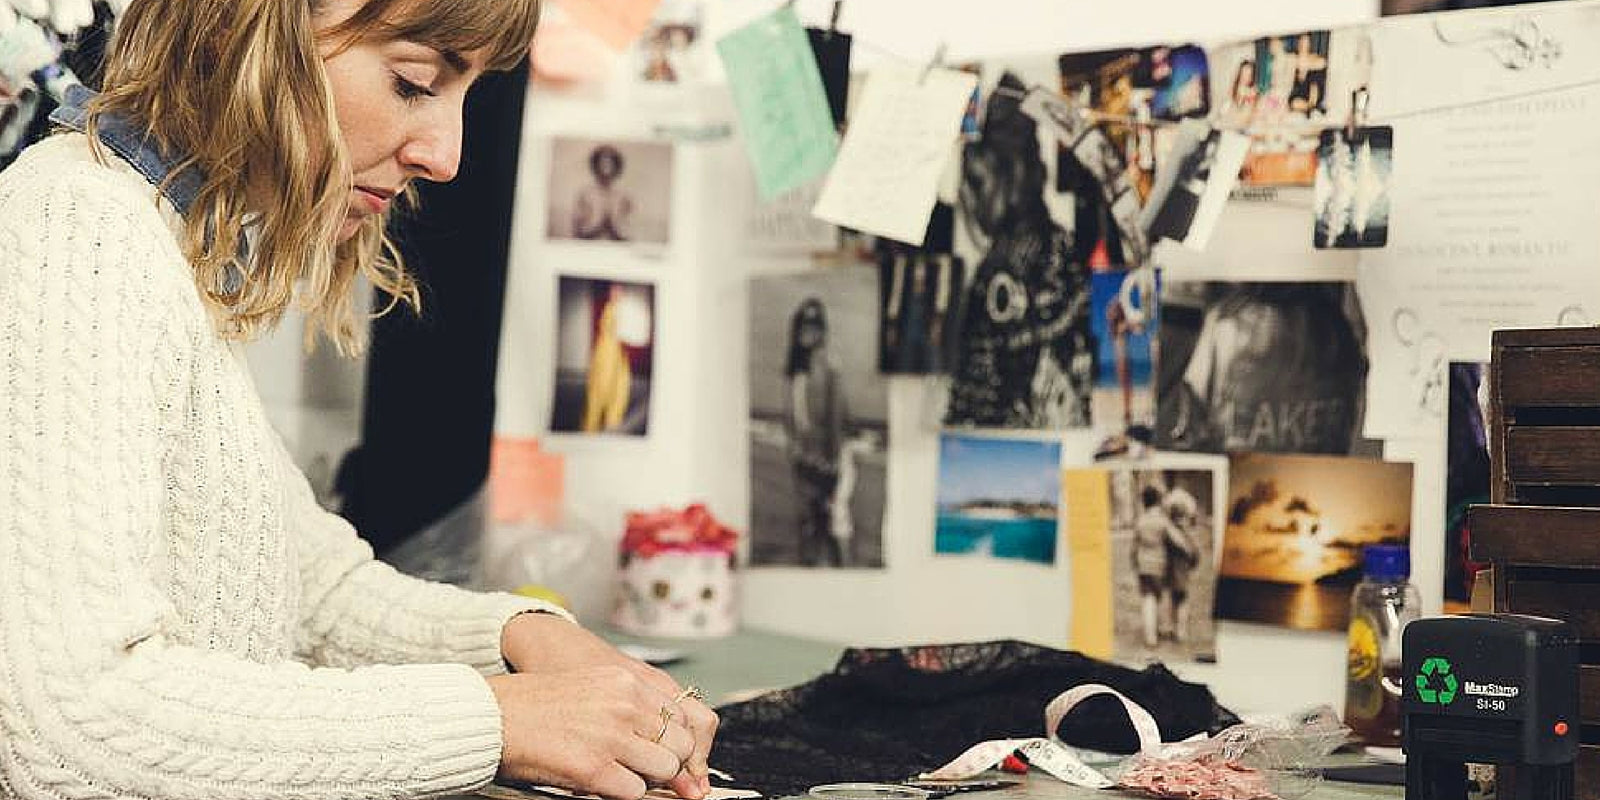 Ellie Simpson-Gray of Iris London sewing in her studio